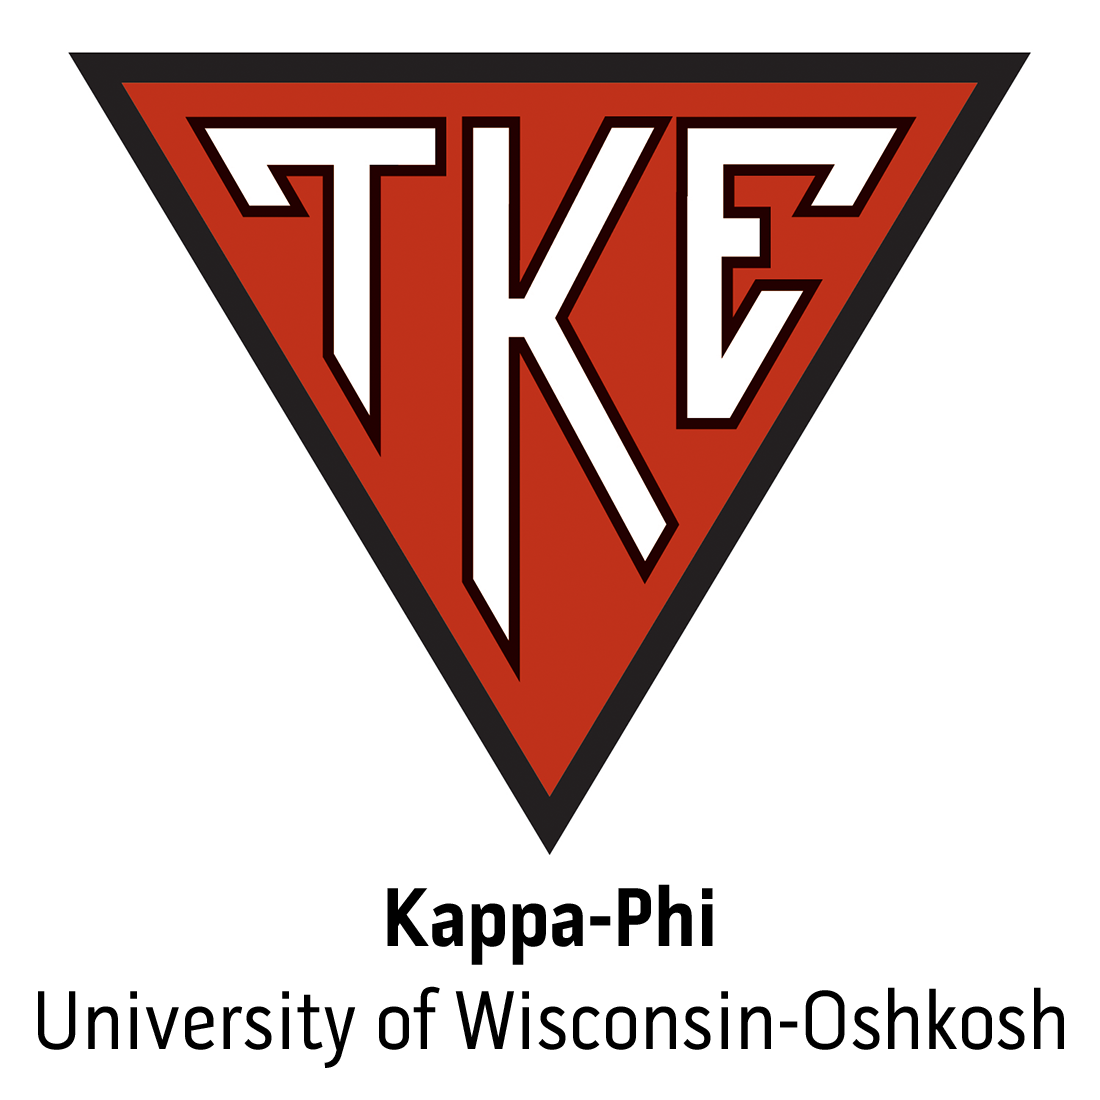 Kappa-Phi Chapter at University of Wisconsin-Oshkosh